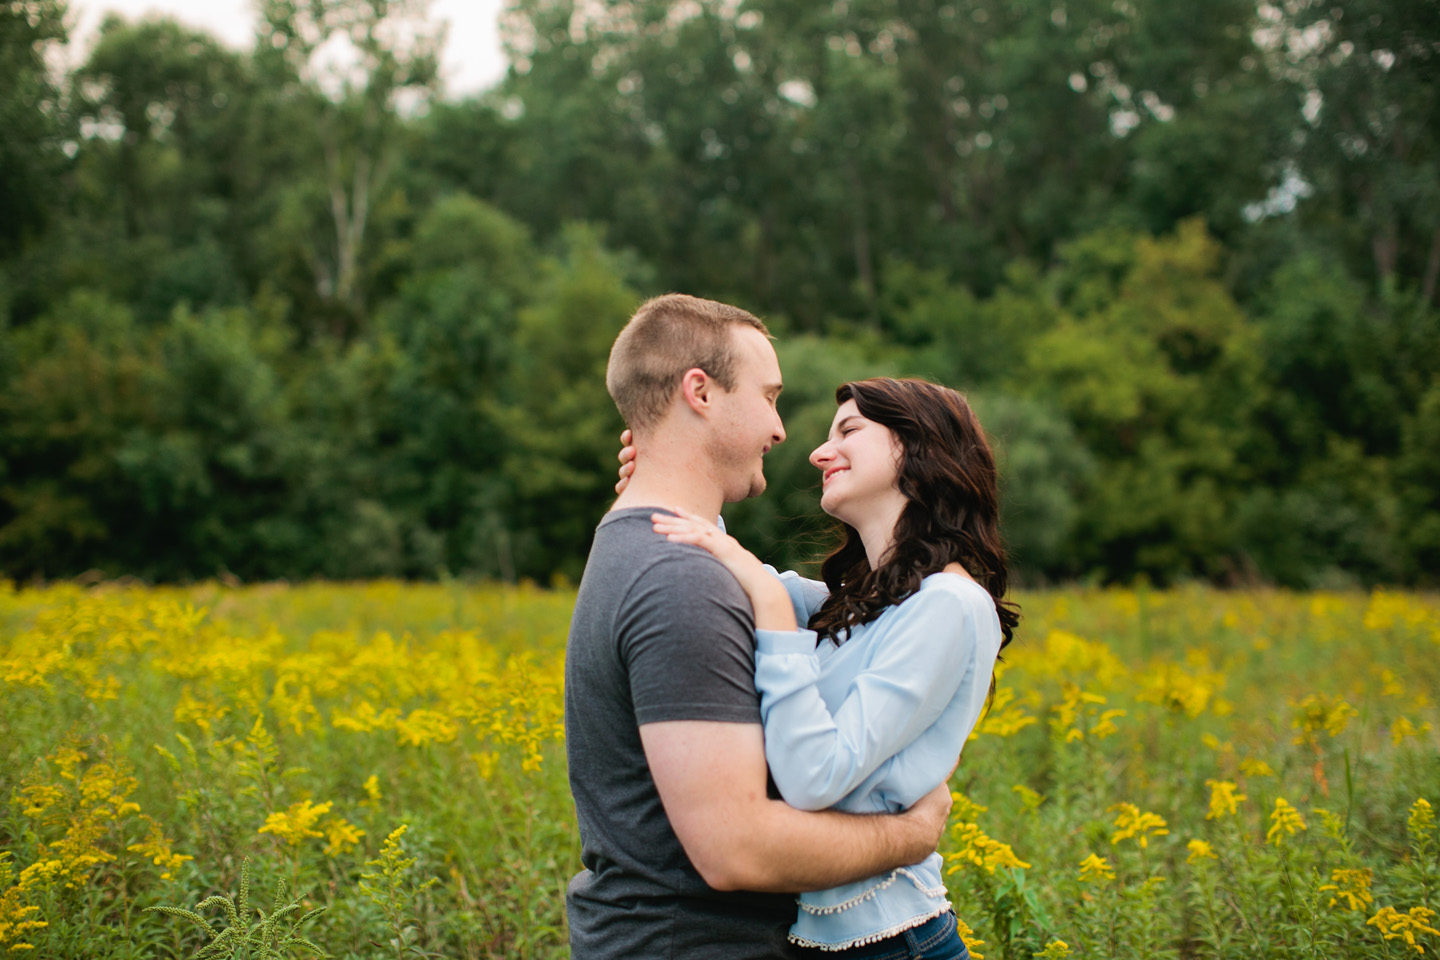 creating natural engagement photos poses